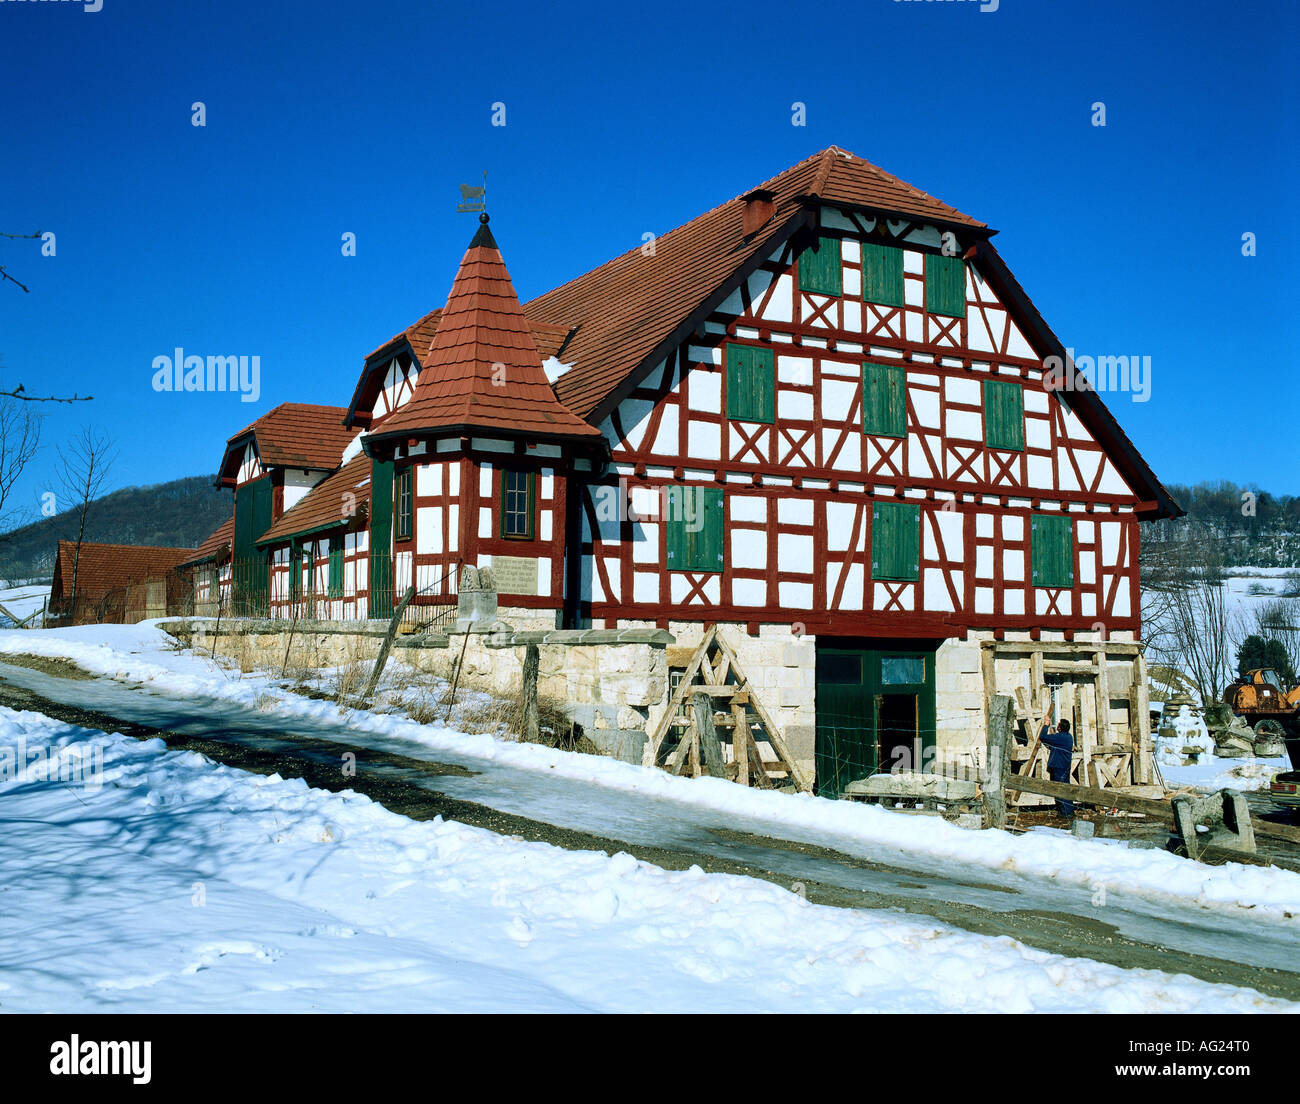 architecture building timbered house sheep shelter germany stock photo 8039807 alamy. Black Bedroom Furniture Sets. Home Design Ideas